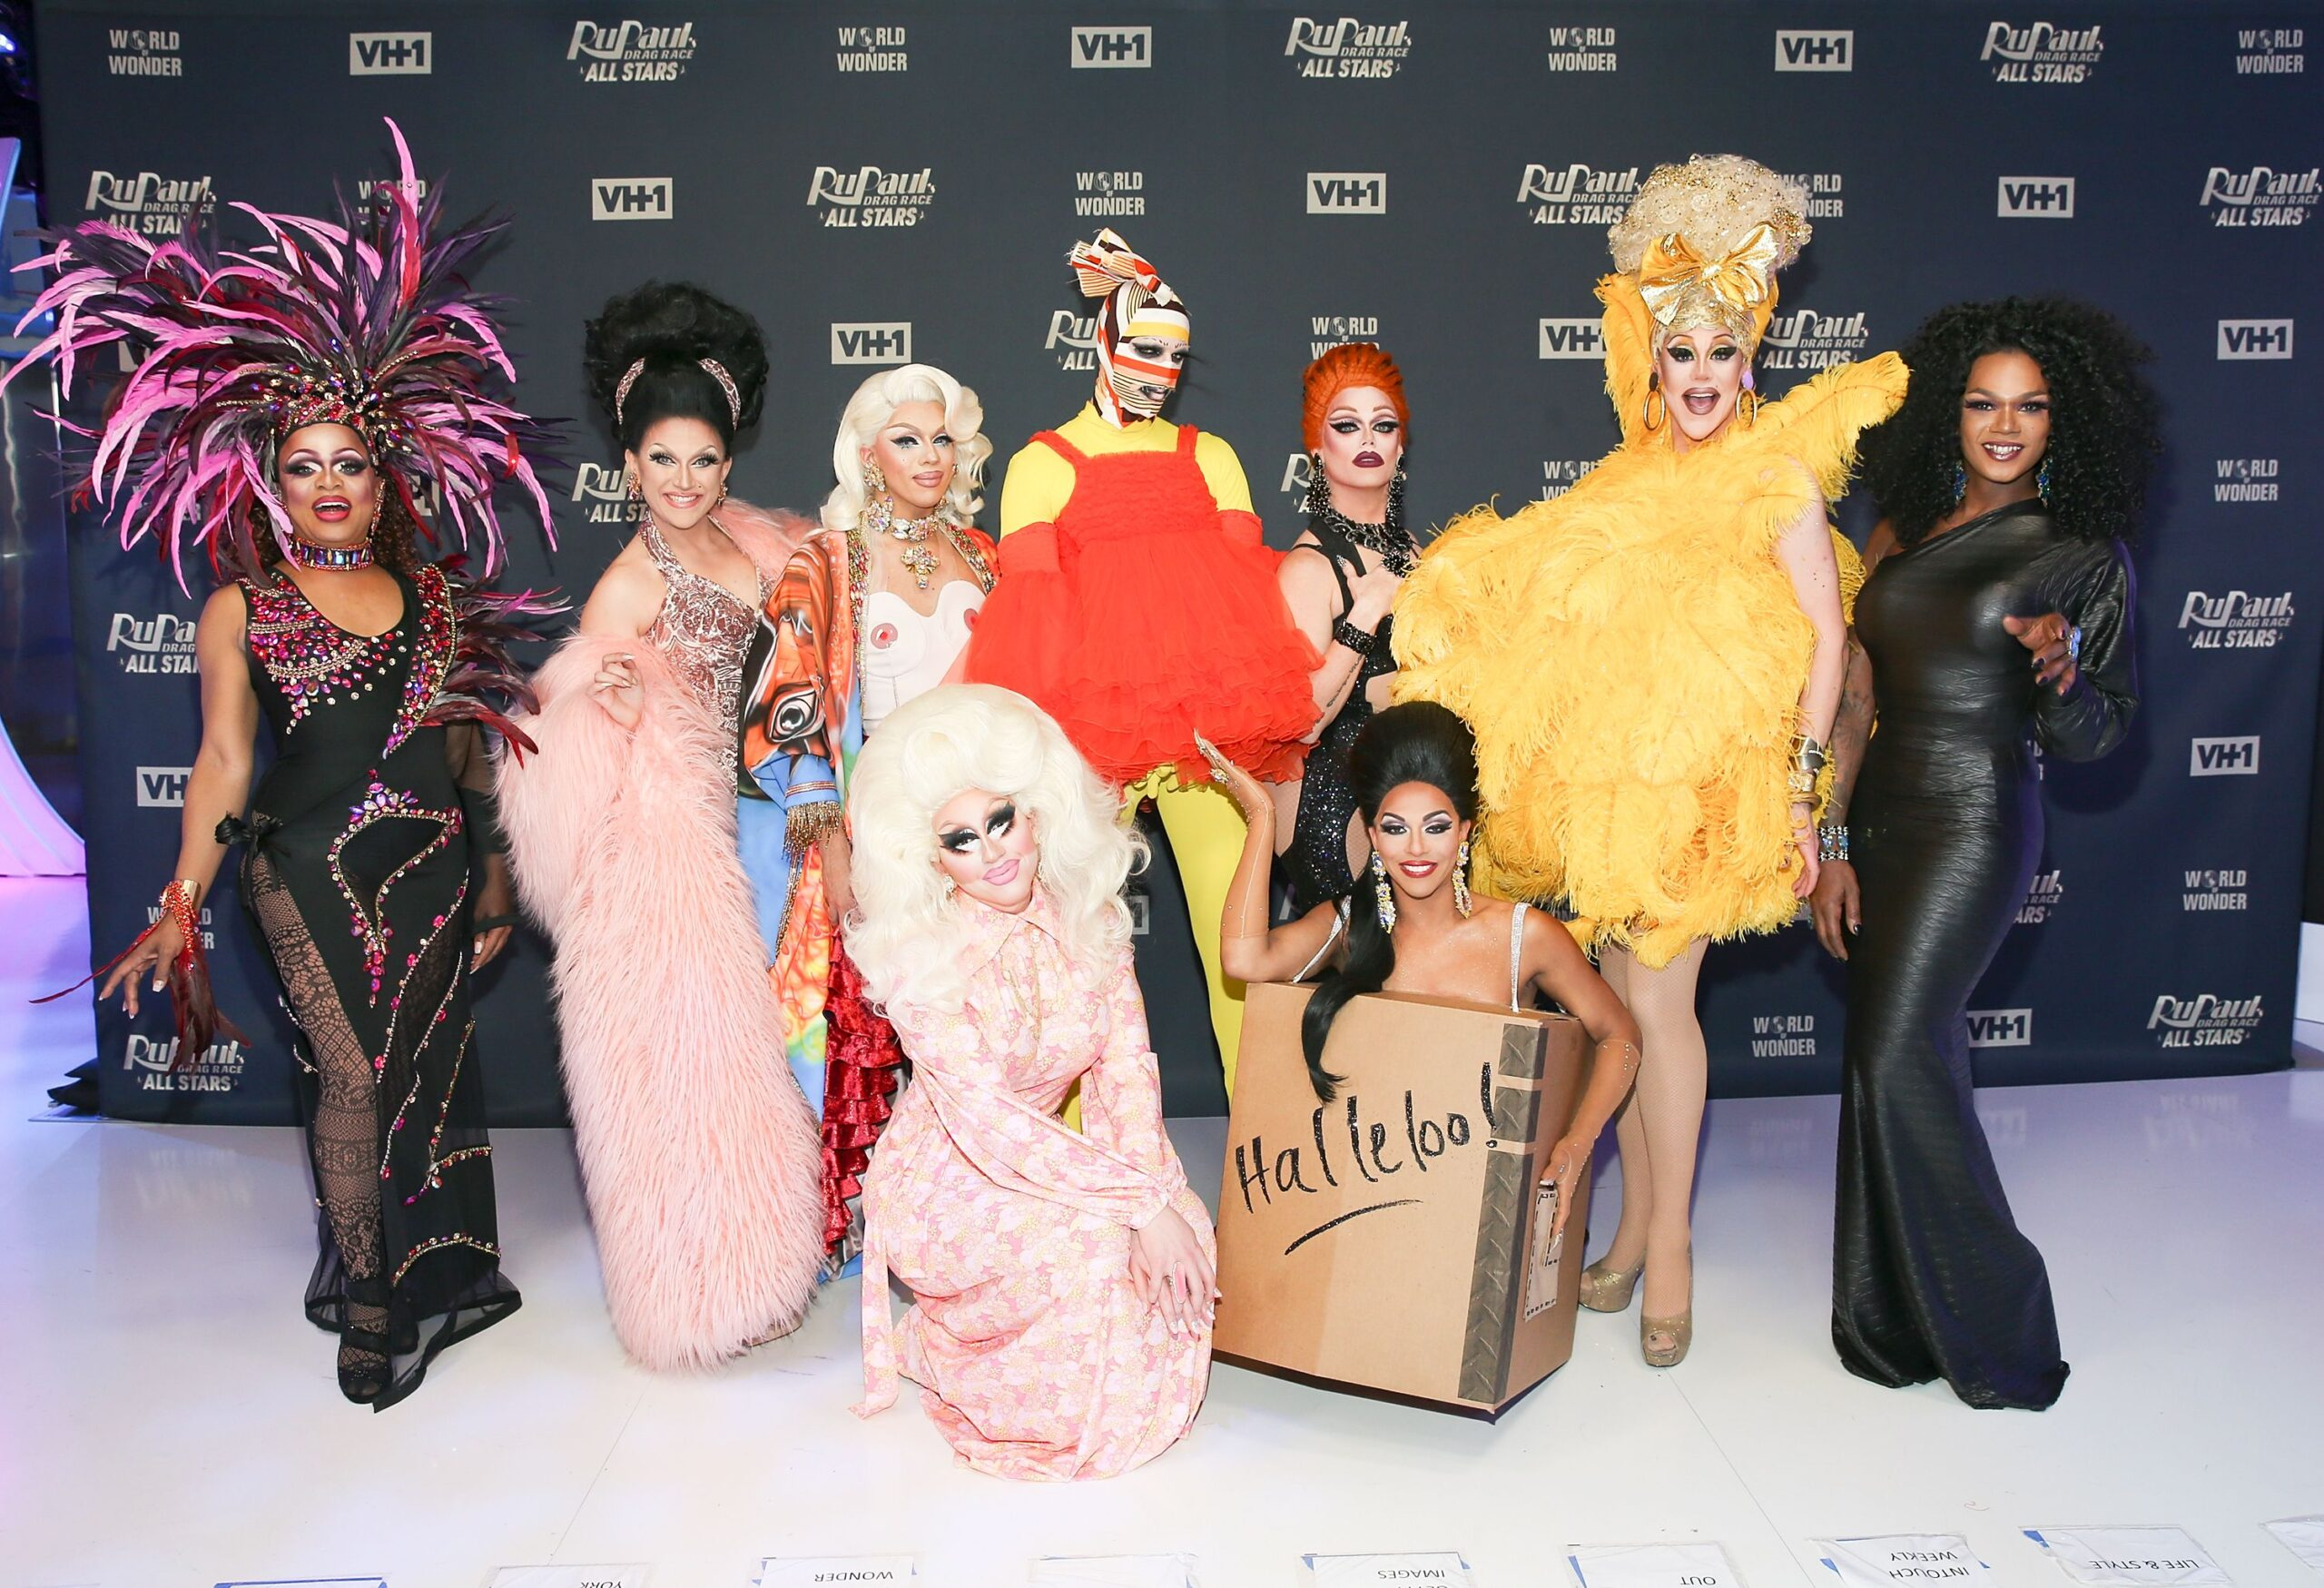 Rupaul's DragRace All Stars 3 Premiere  Event Served The Looks